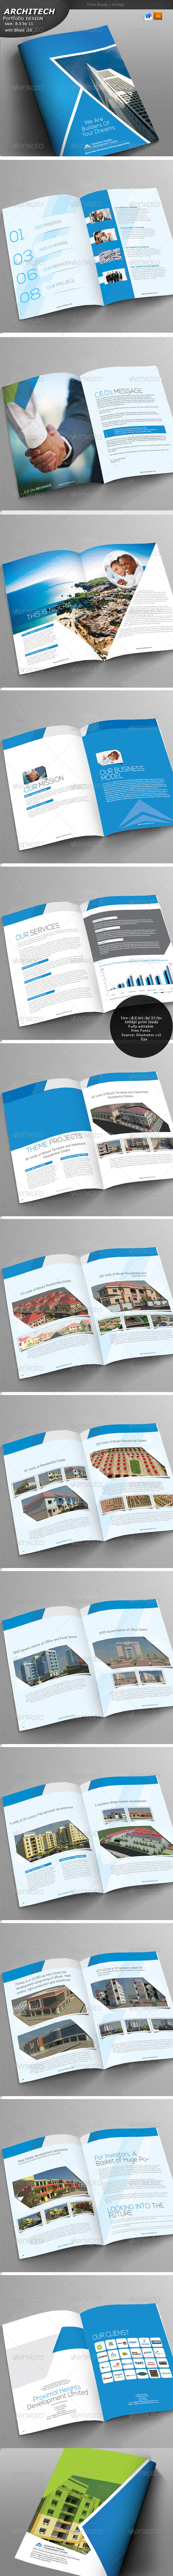 GraphicRiver Industrial Brochure 5124914